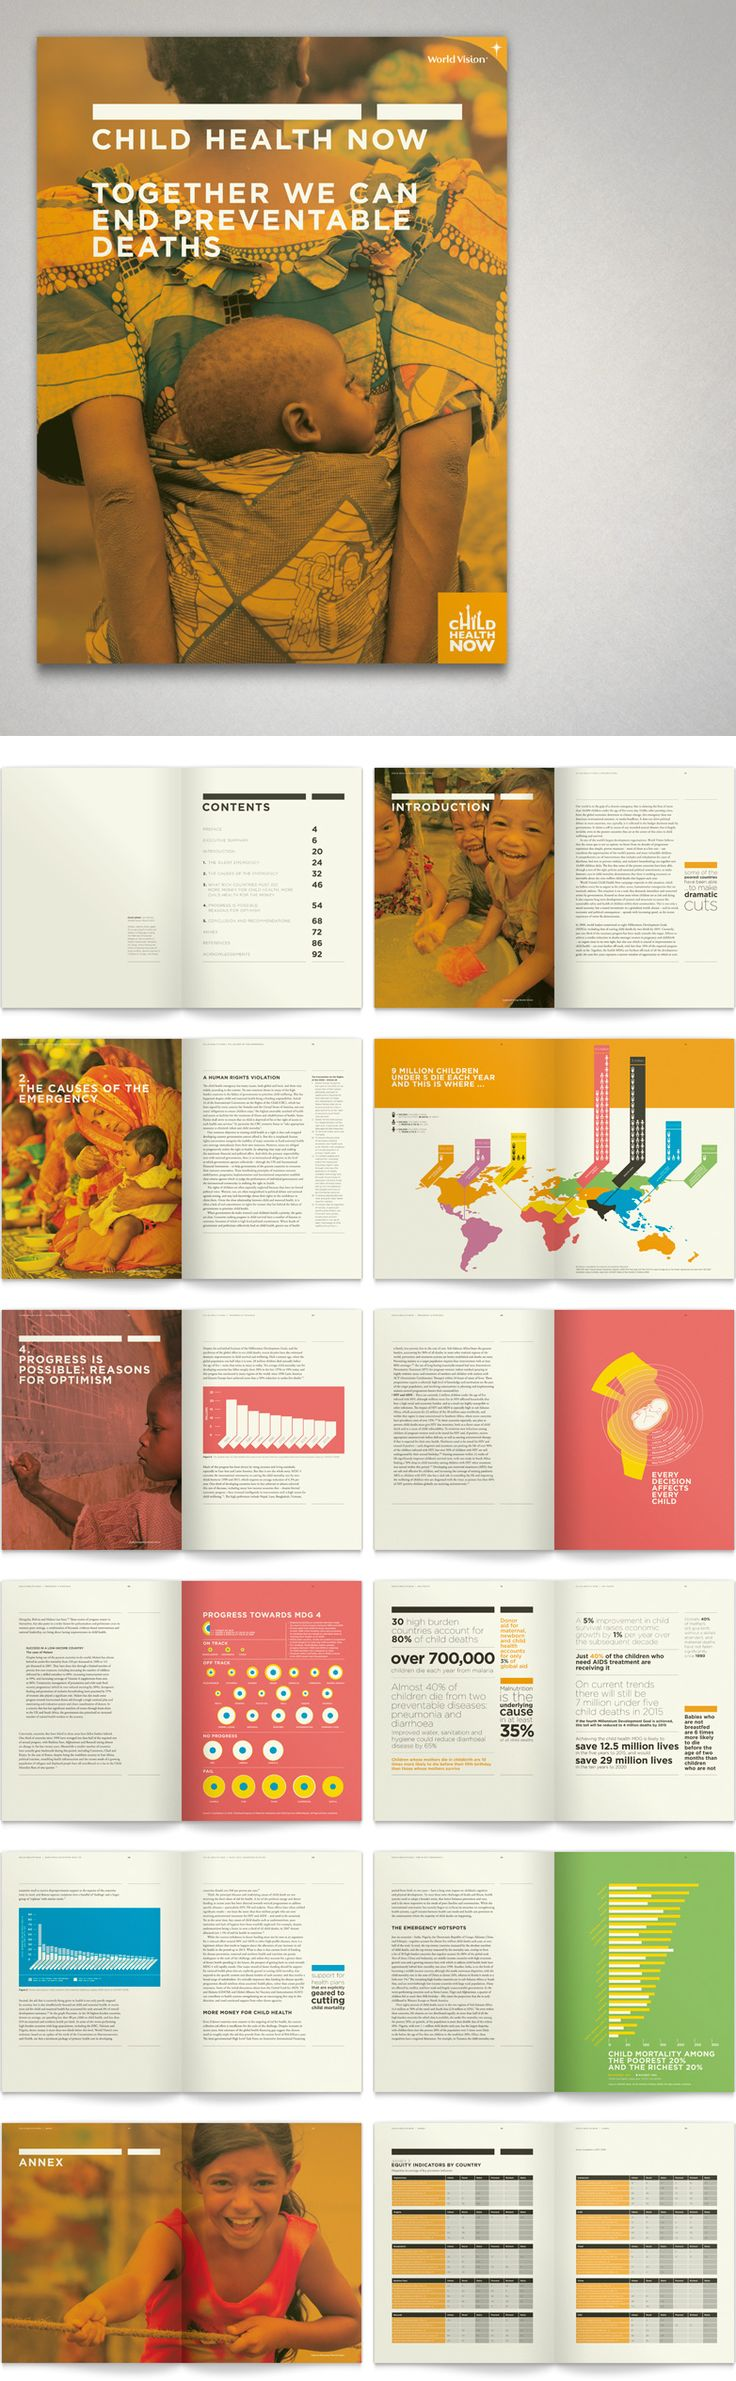 nice colors and graphics in this #print #design World Vision Child Health Now report design